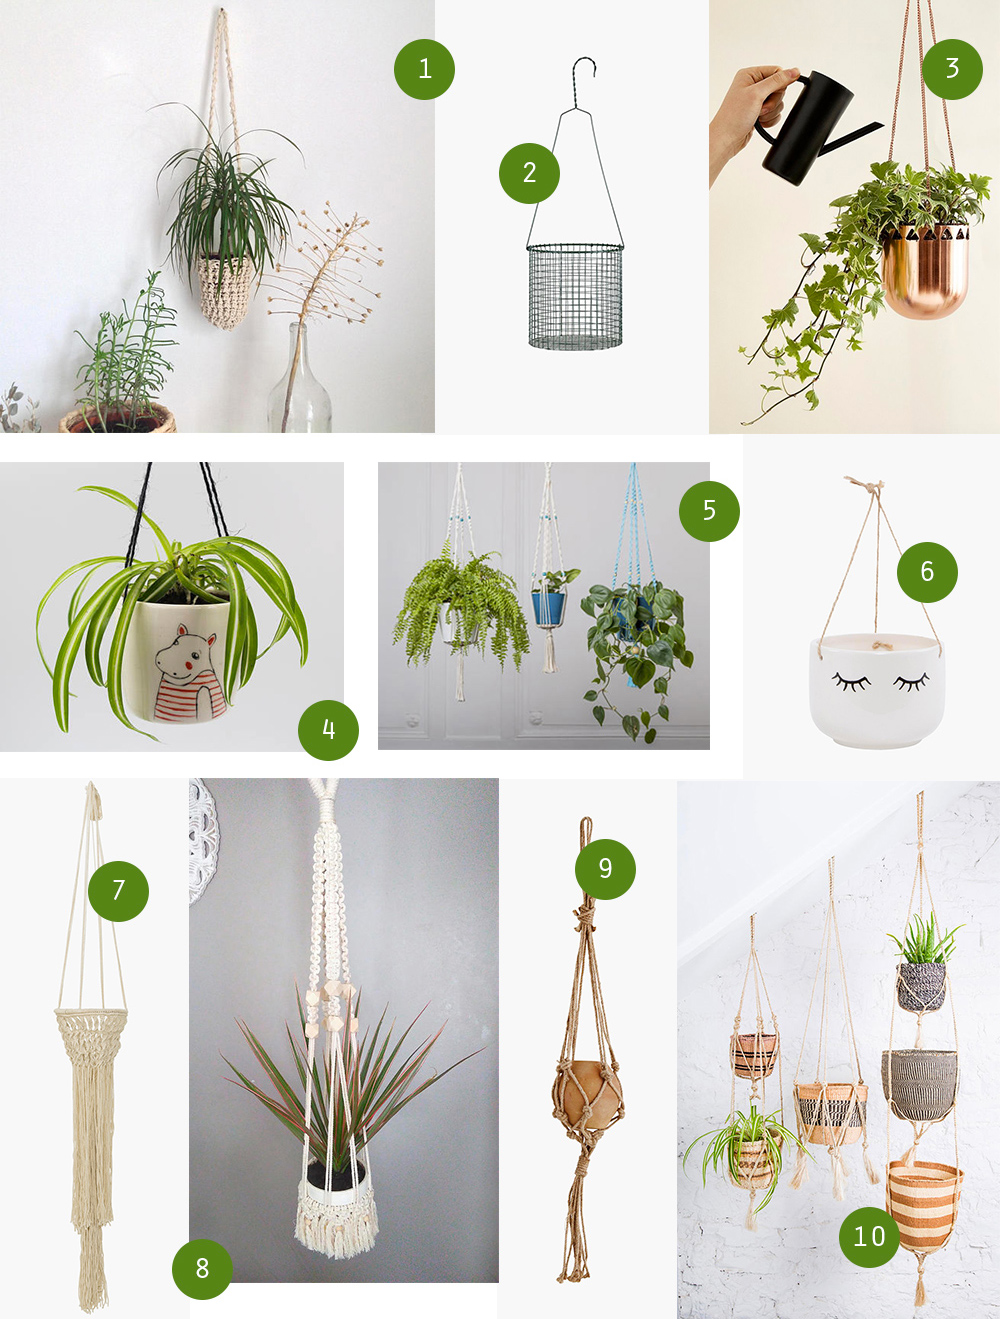 selection-suspensions-plantes